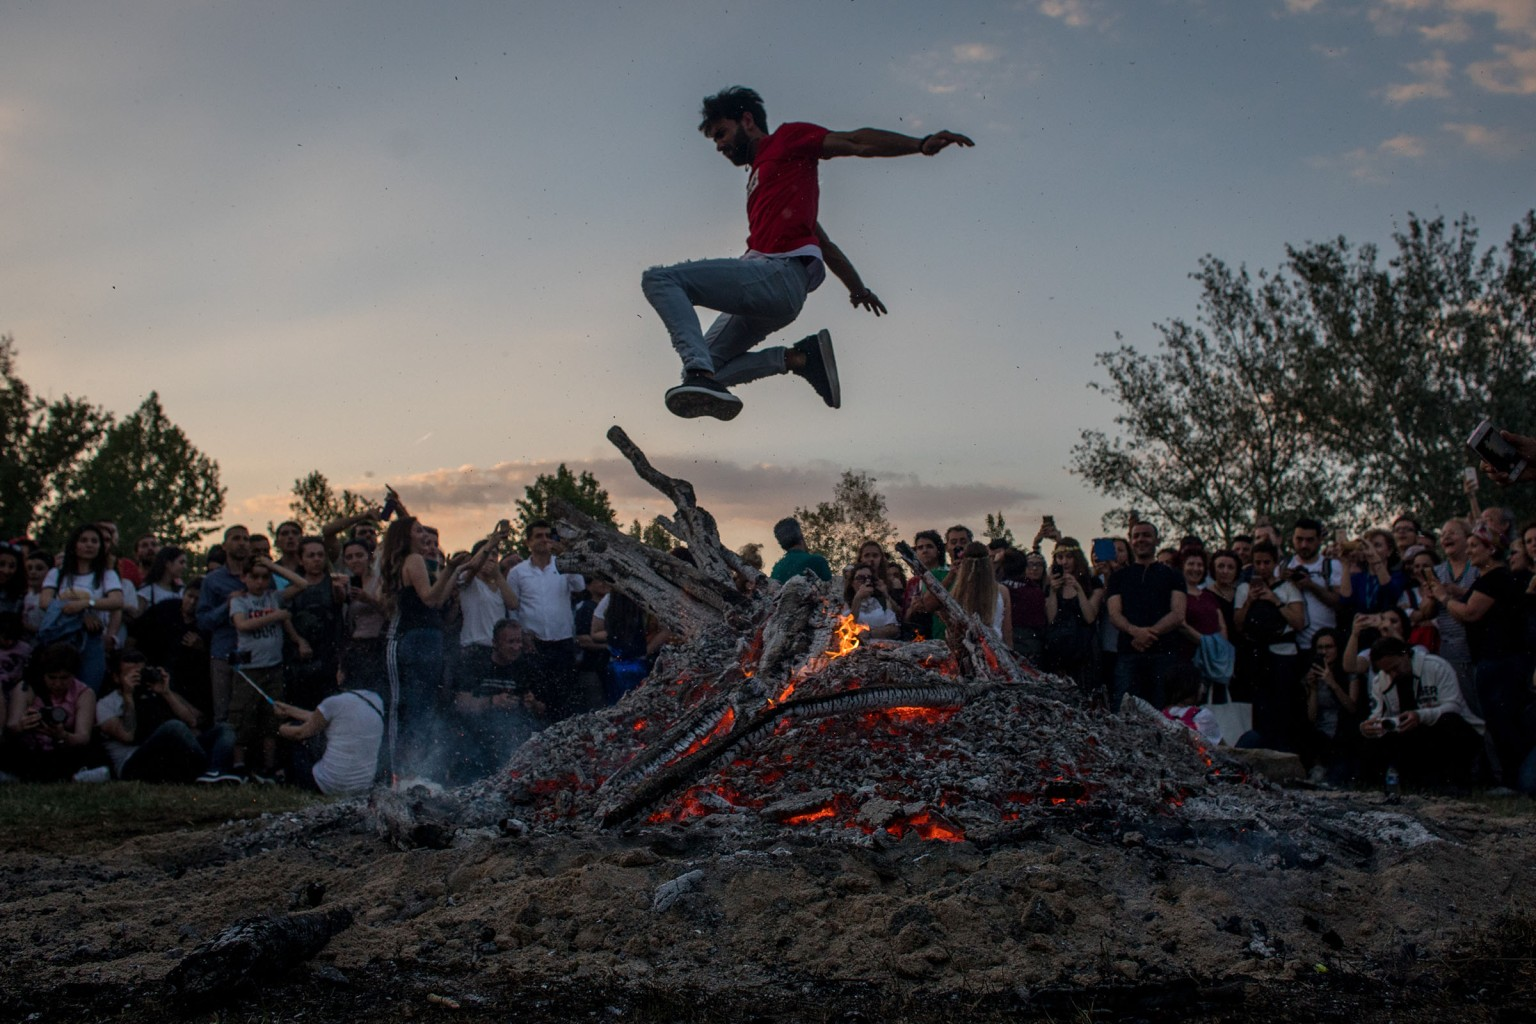 A man jumps over a large bonfire during the Kakava Festival on May 5 in Edirne, Turkey. The festival celebrates the coming of spring among the Roma community.  Chris McGrath/Getty Images